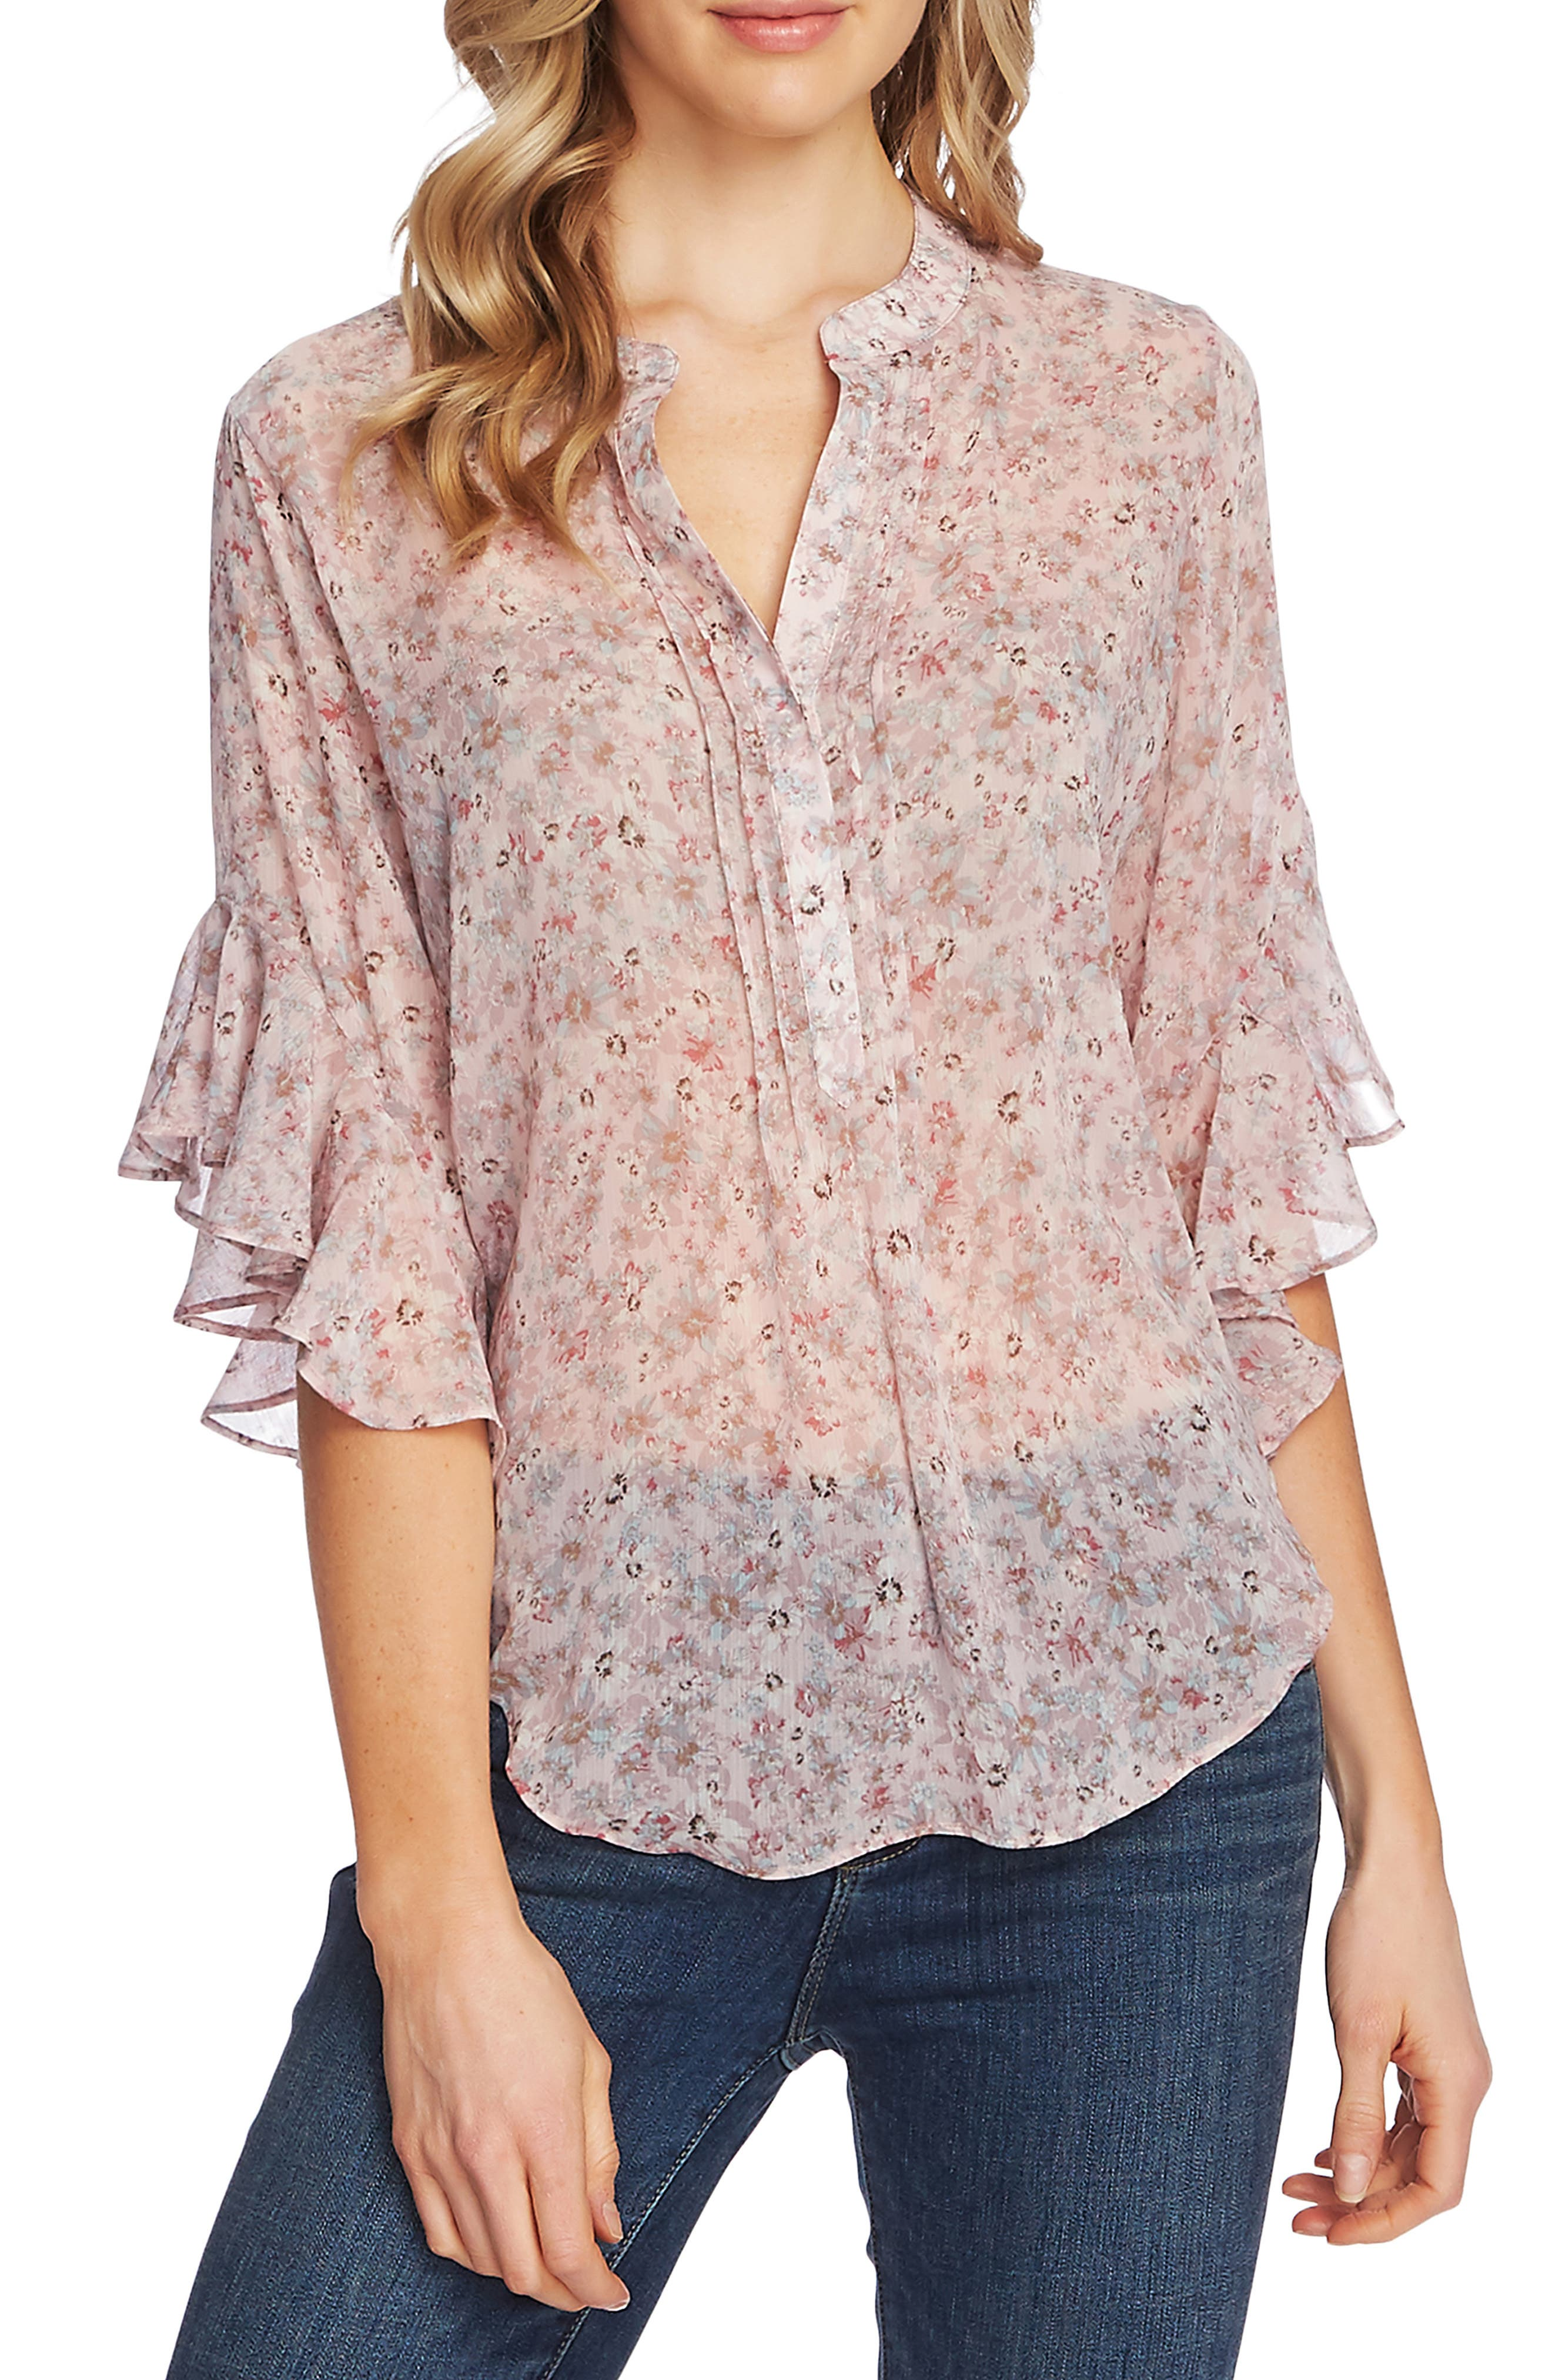 Vince Camuto Womens Floral Print Flutter-Sleeves Blouse Top BHFO 9065